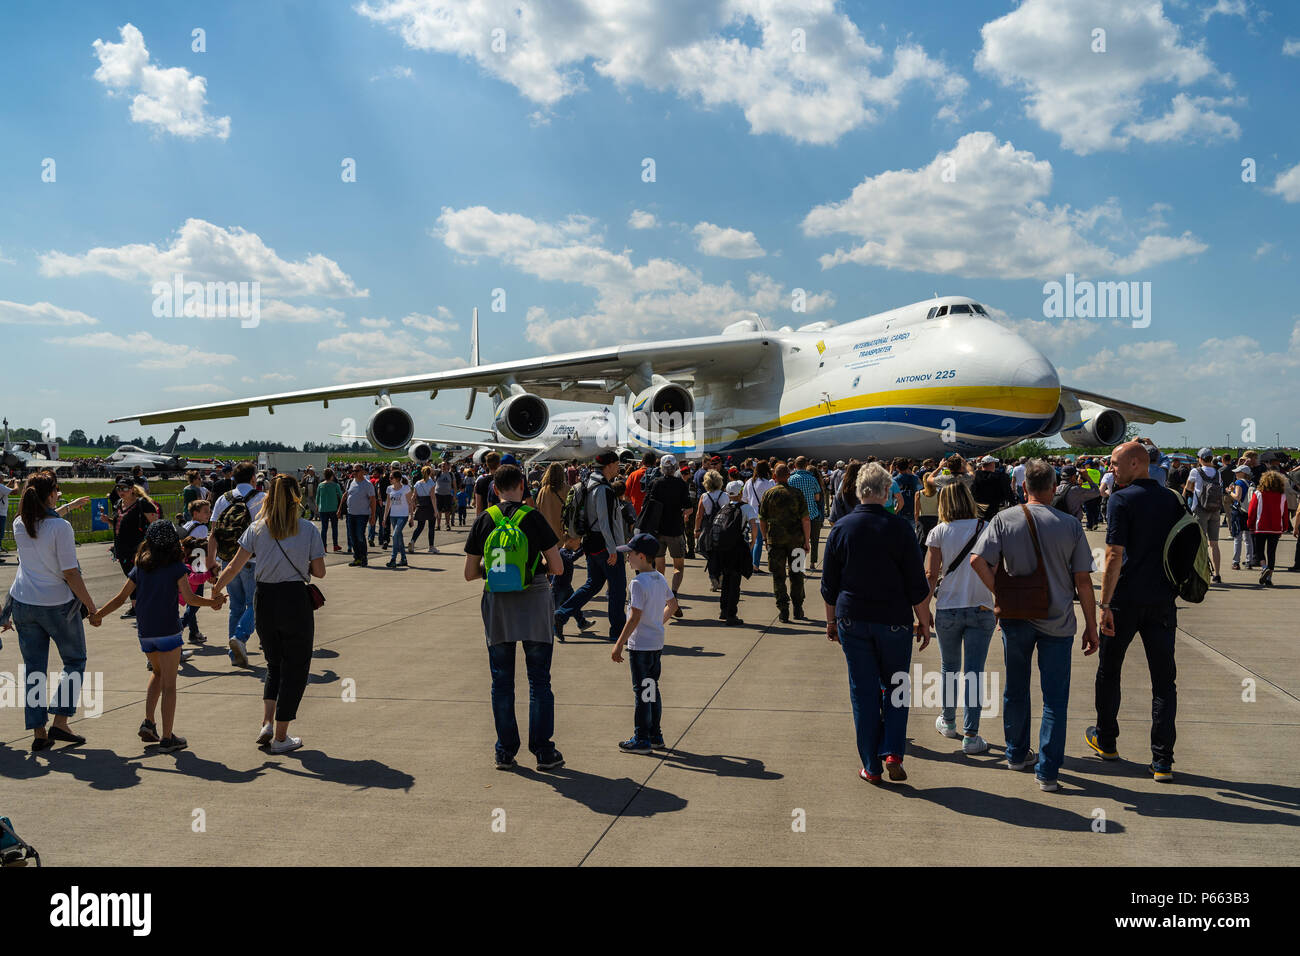 BERLIN - APRIL 28, 2018: Strategic airlifter Antonov An-225 Mriya by Antonov Airlines on the airfield. Exhibition ILA Berlin Air Show 2018 - Stock Image